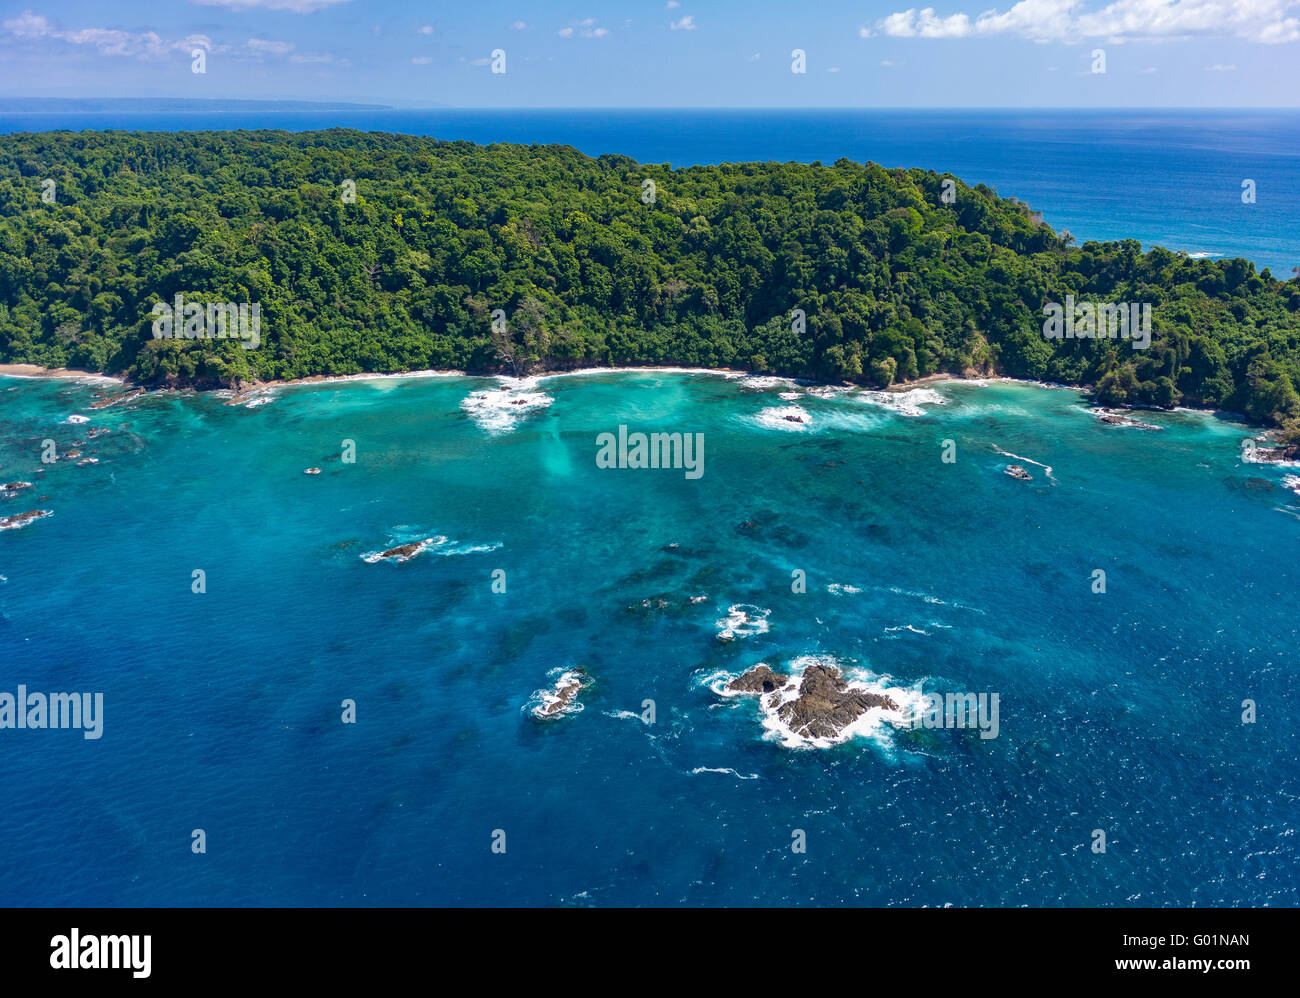 ISLA DEL CANO, COSTA RICA - Aerial of Cano Island National Park, an Island in Pacific Ocean - Stock Image